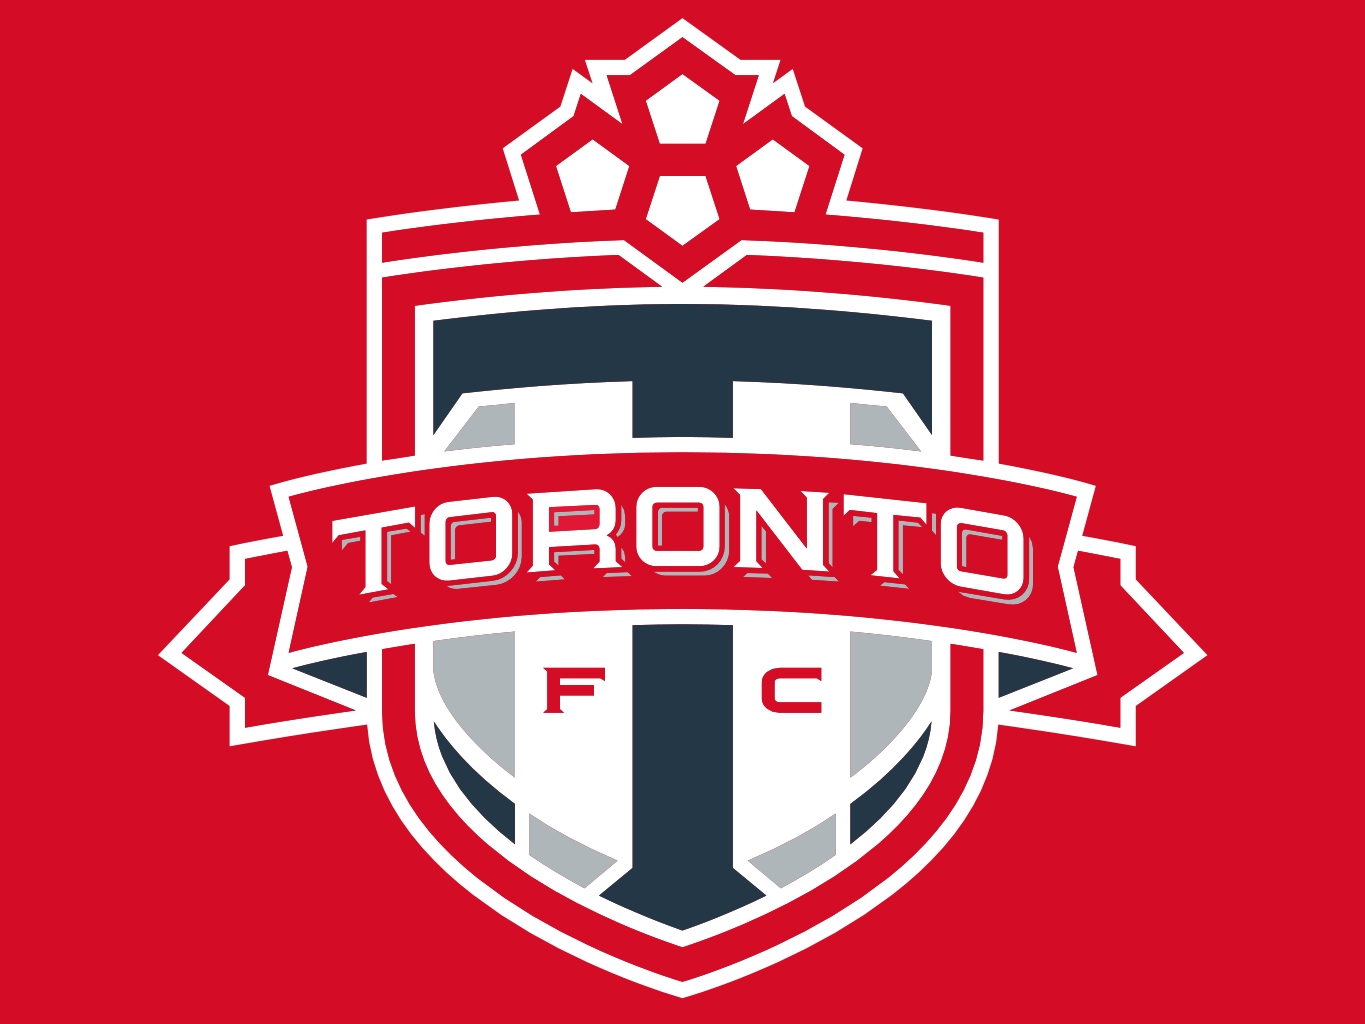 Toronto FC | Pro Sports Teams Wiki | Fandom powered by Wikia